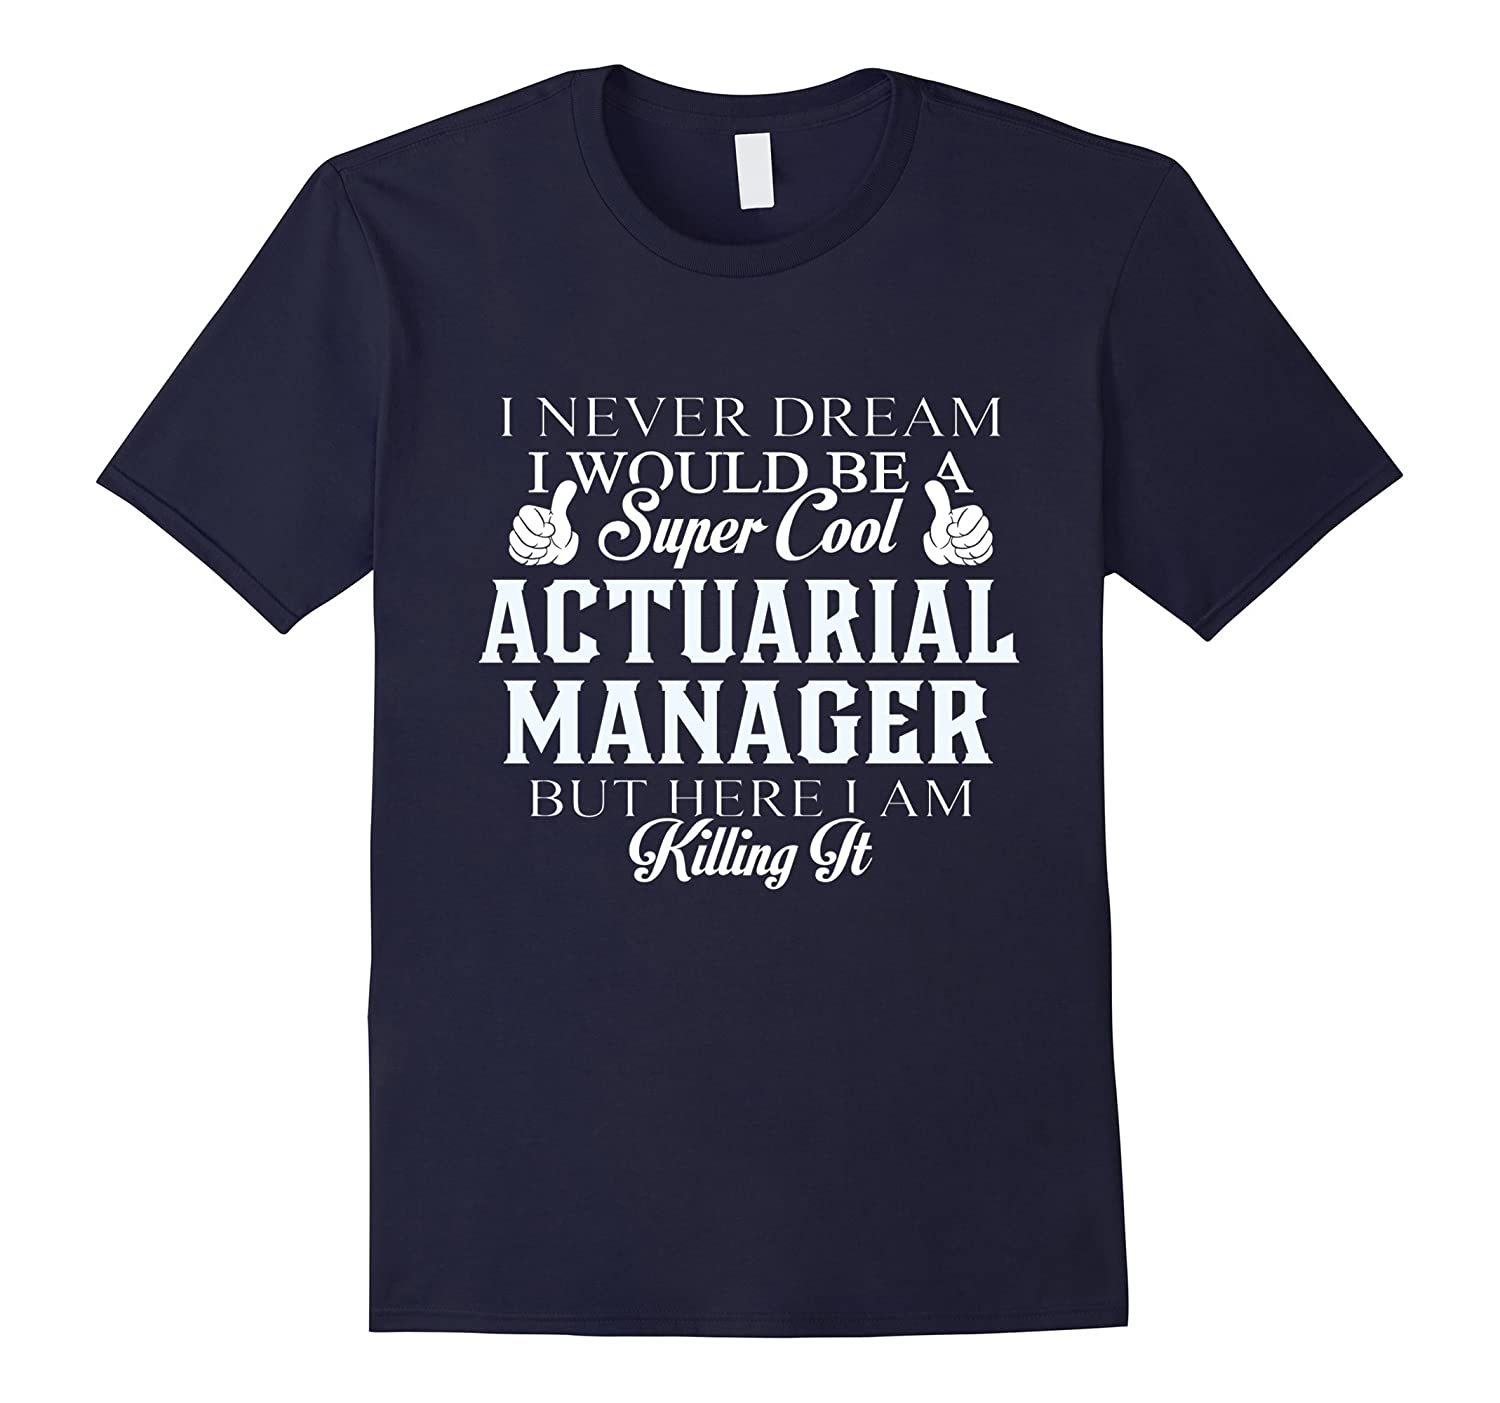 Dreamed would be super cool Actuarial manager killing it-Vaci